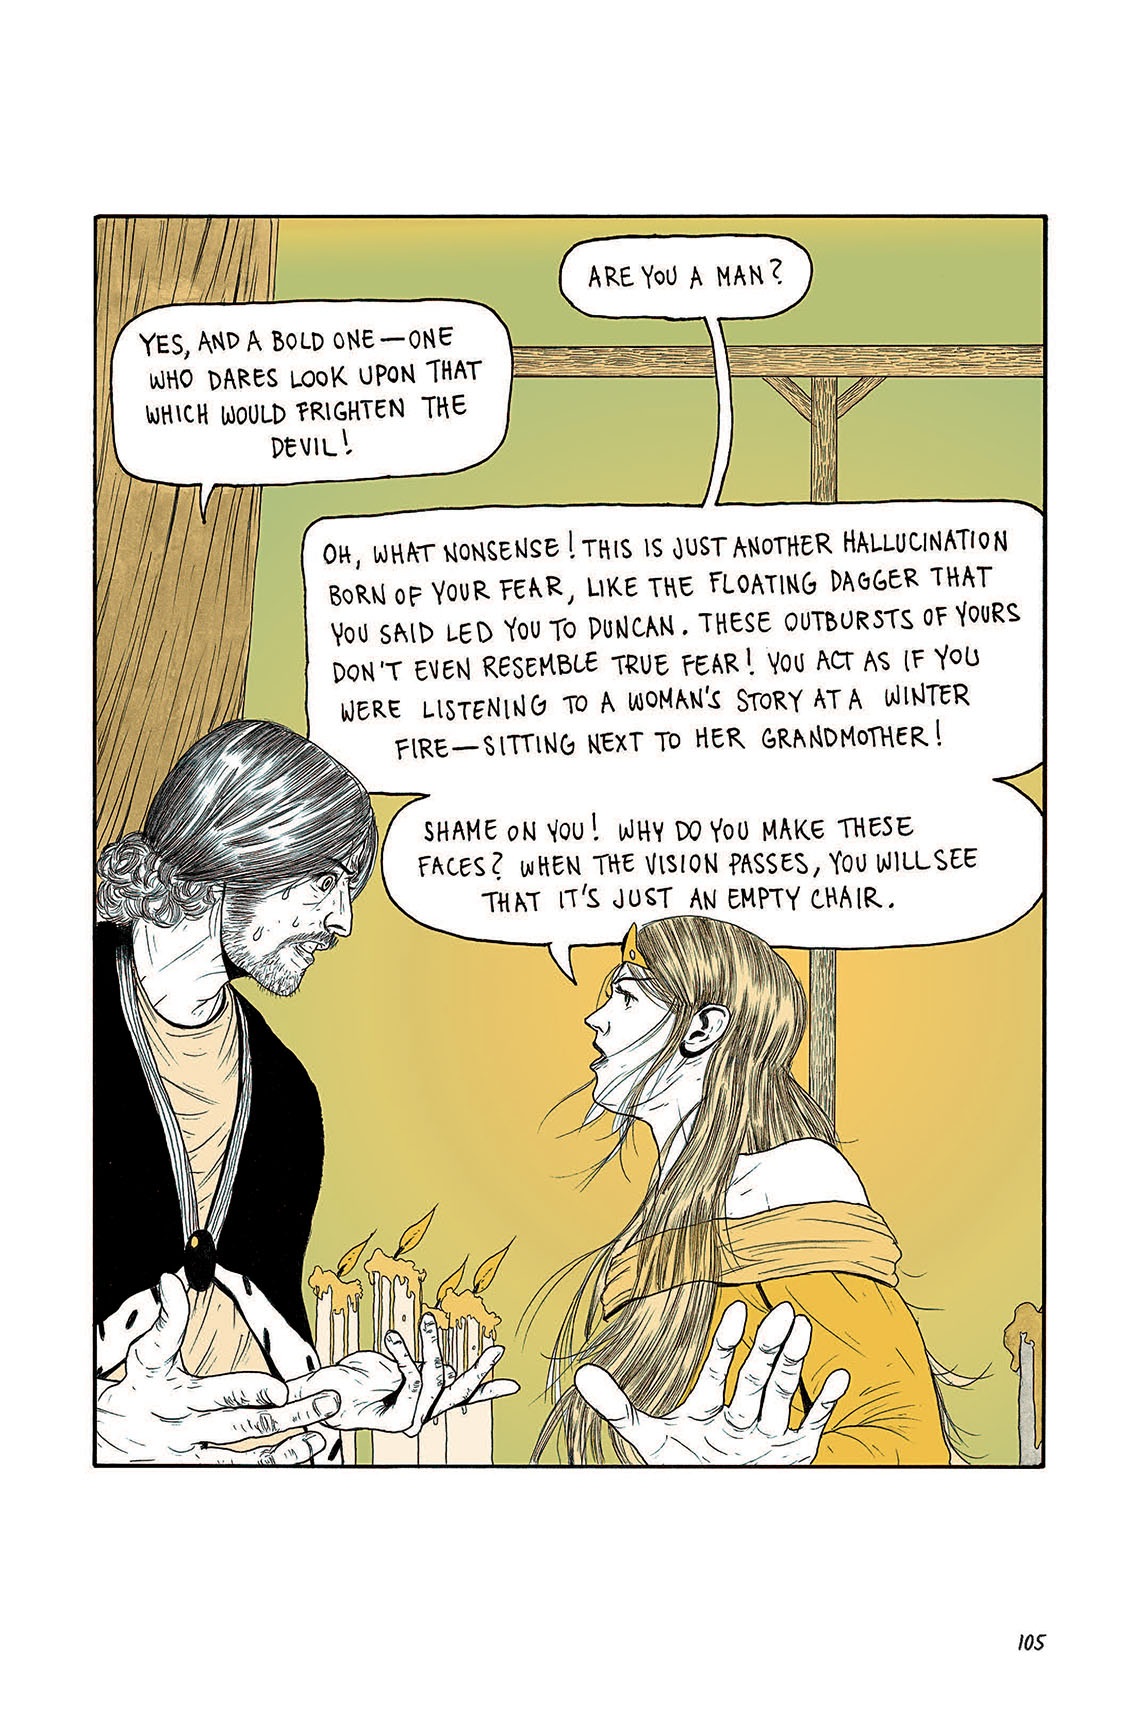 Macbeth Act 3 Scene 4 Page 105 Graphic Novel Sparknotes Sparknote 6